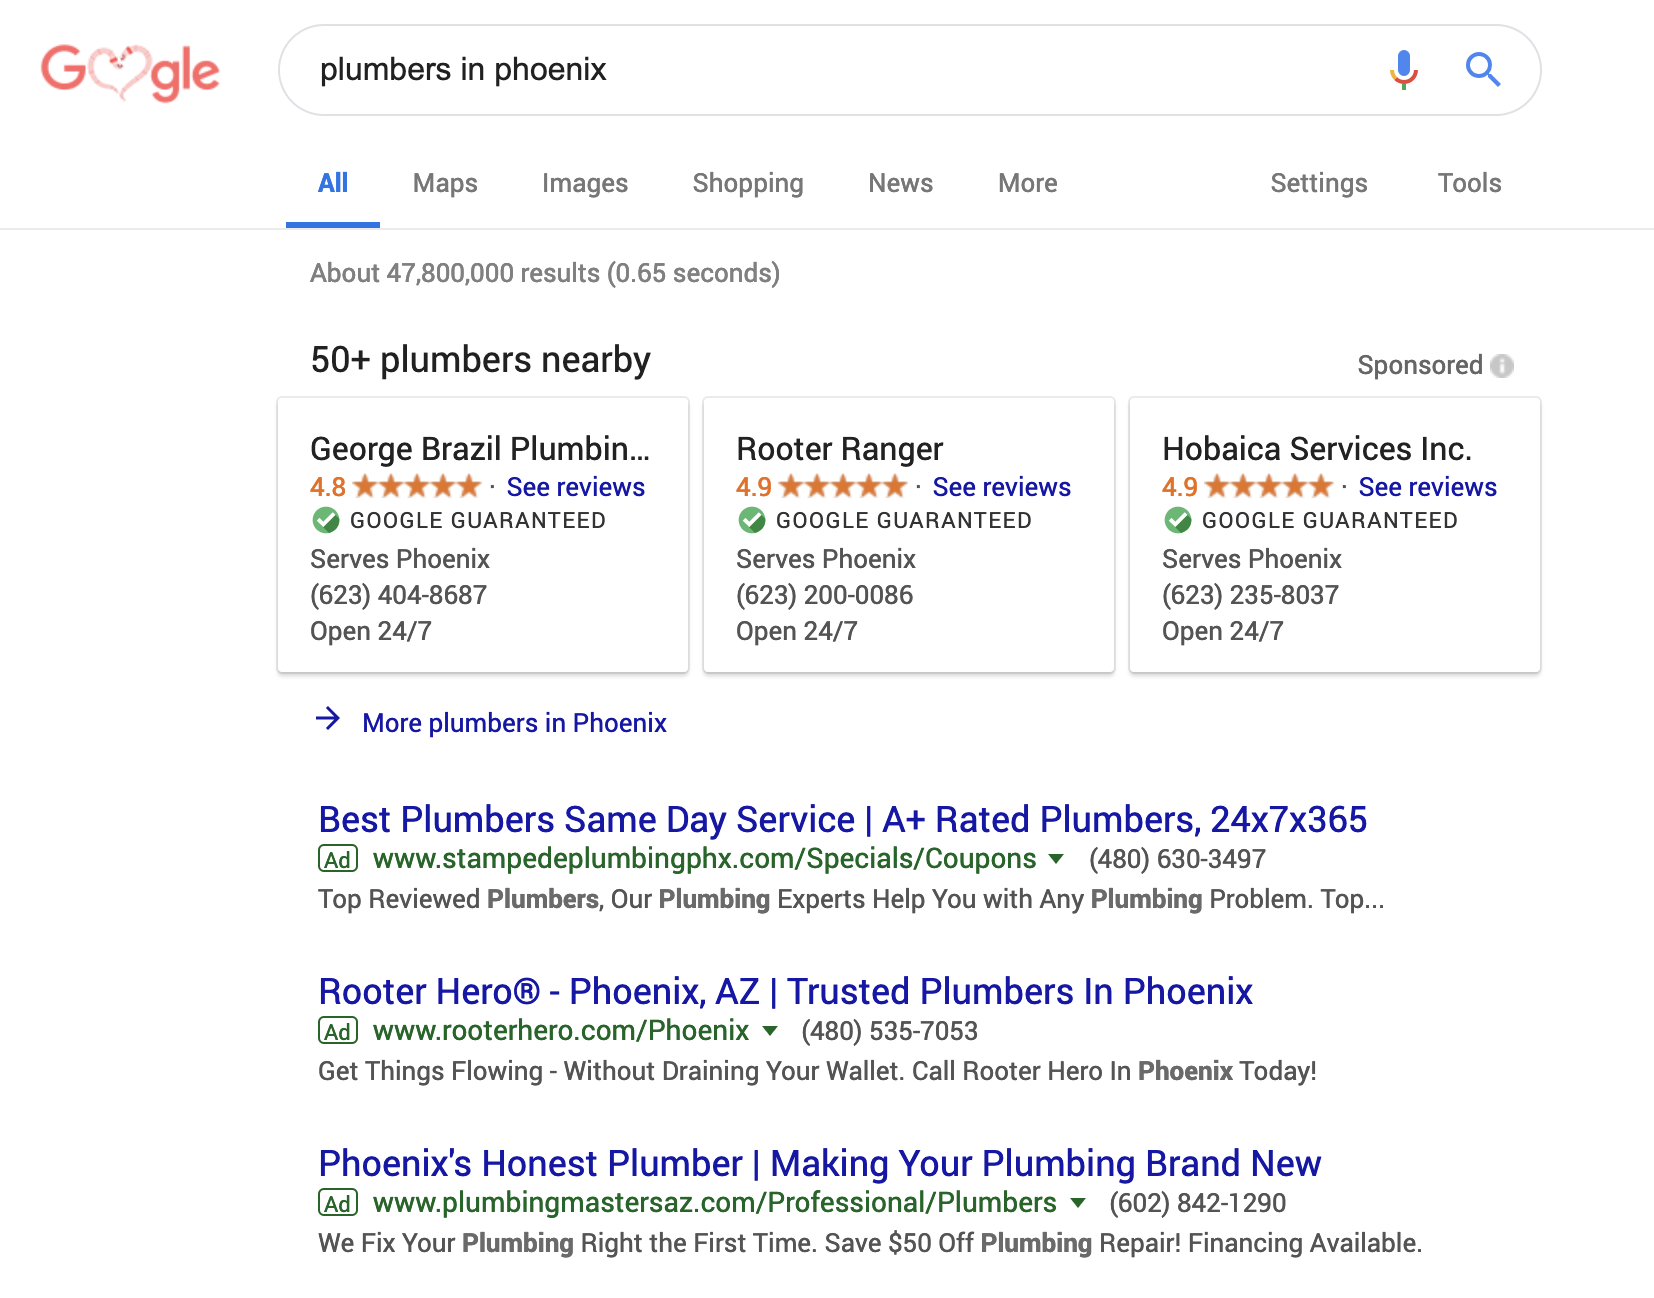 A screenshot of the Google ad platform.